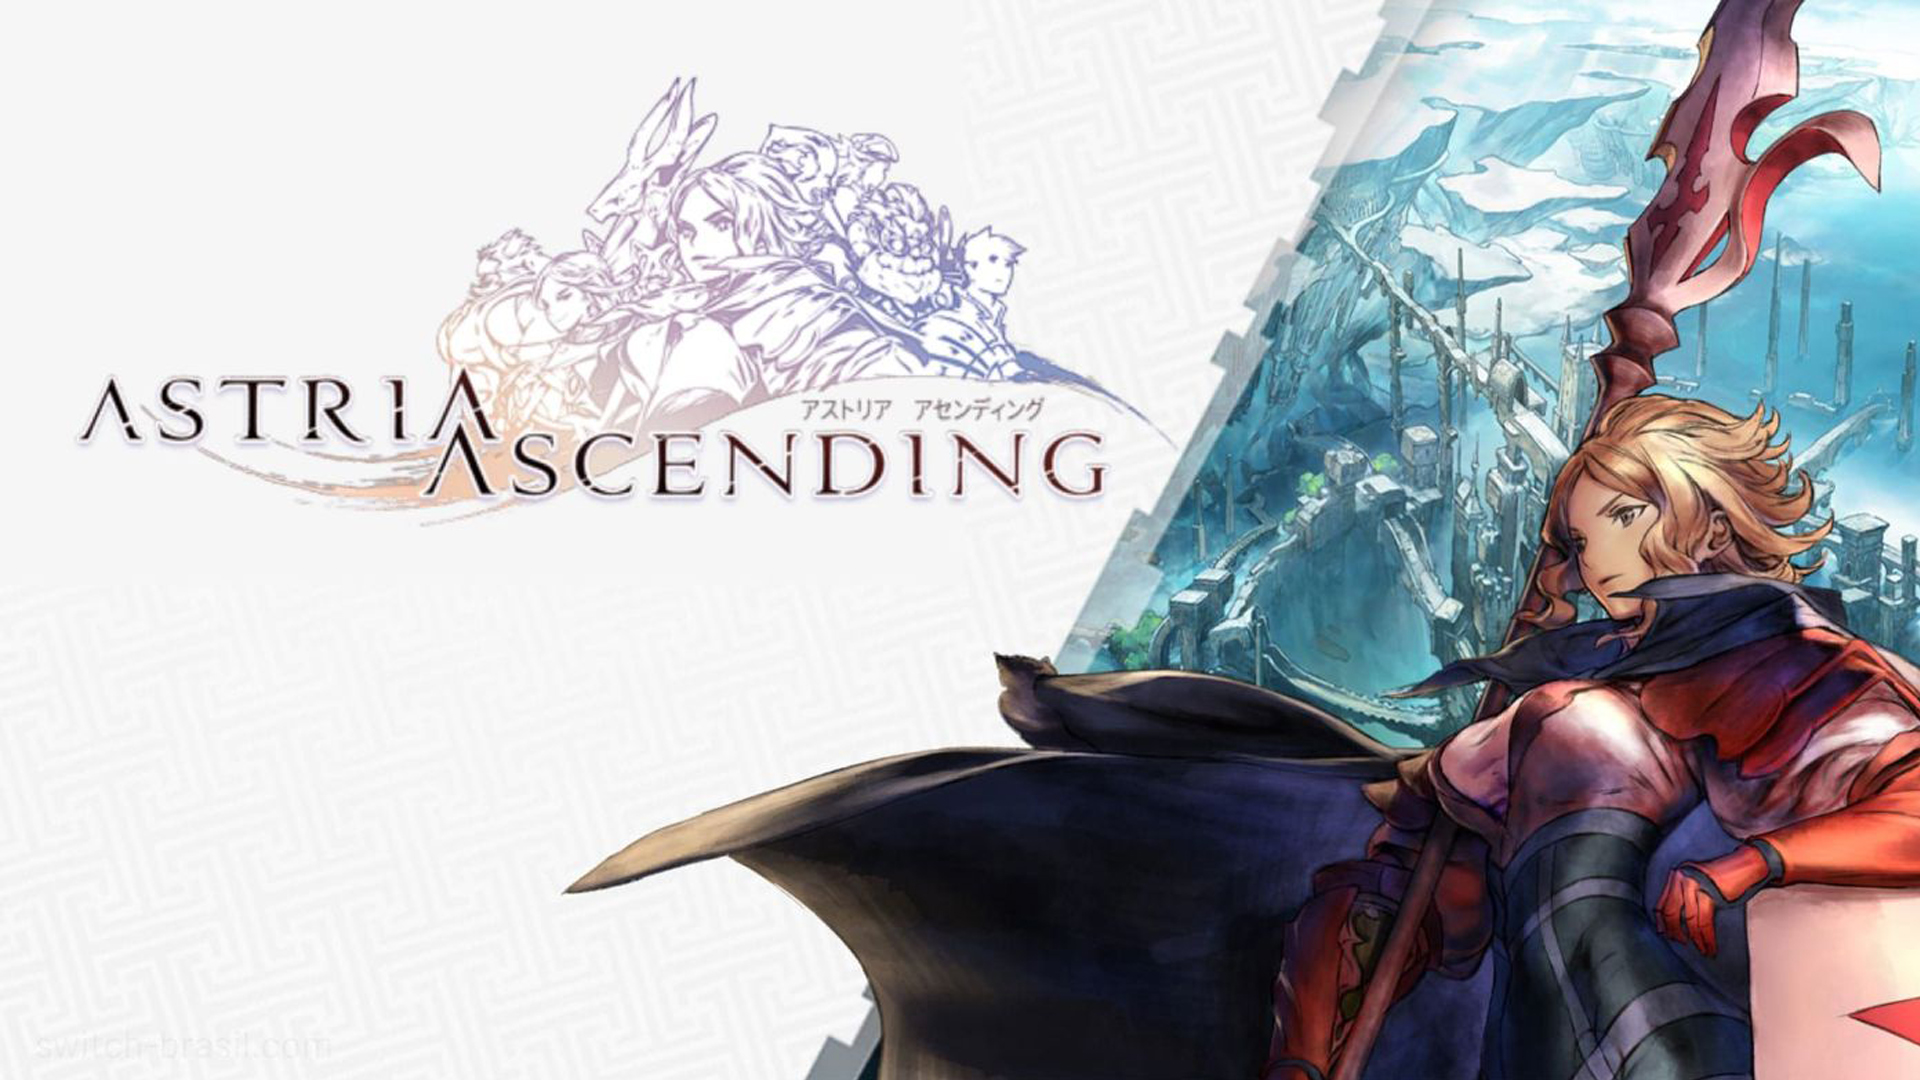 ASTRIA ASCENDING IN GAME PASS, HOW DO I GET THE GAME FOR FREE?